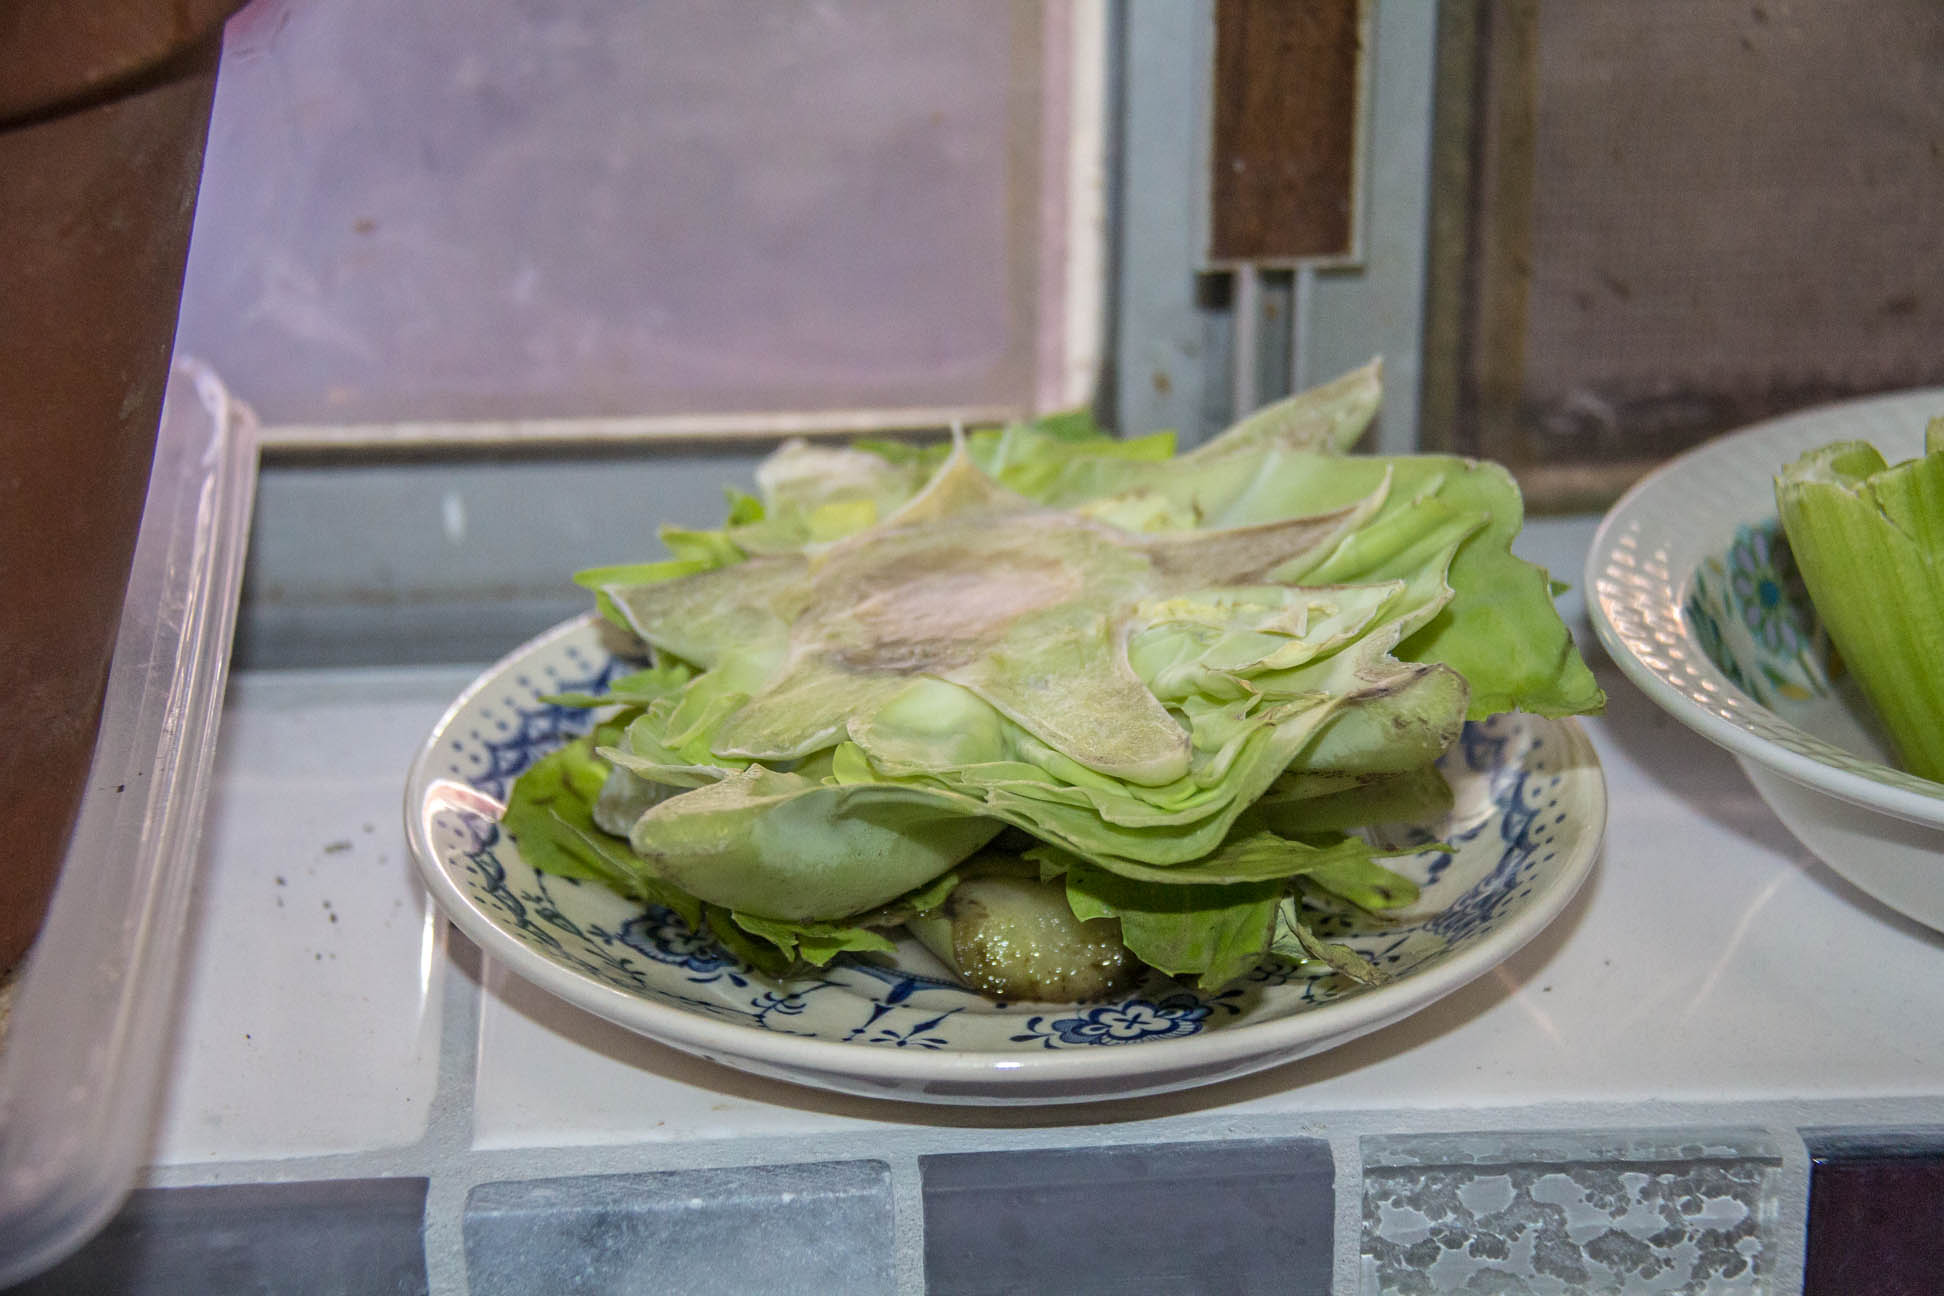 15/04/15 Day 1: Chopped off the top bit of the cabbage to use and put the bottom bit on a plate with a bit of water.